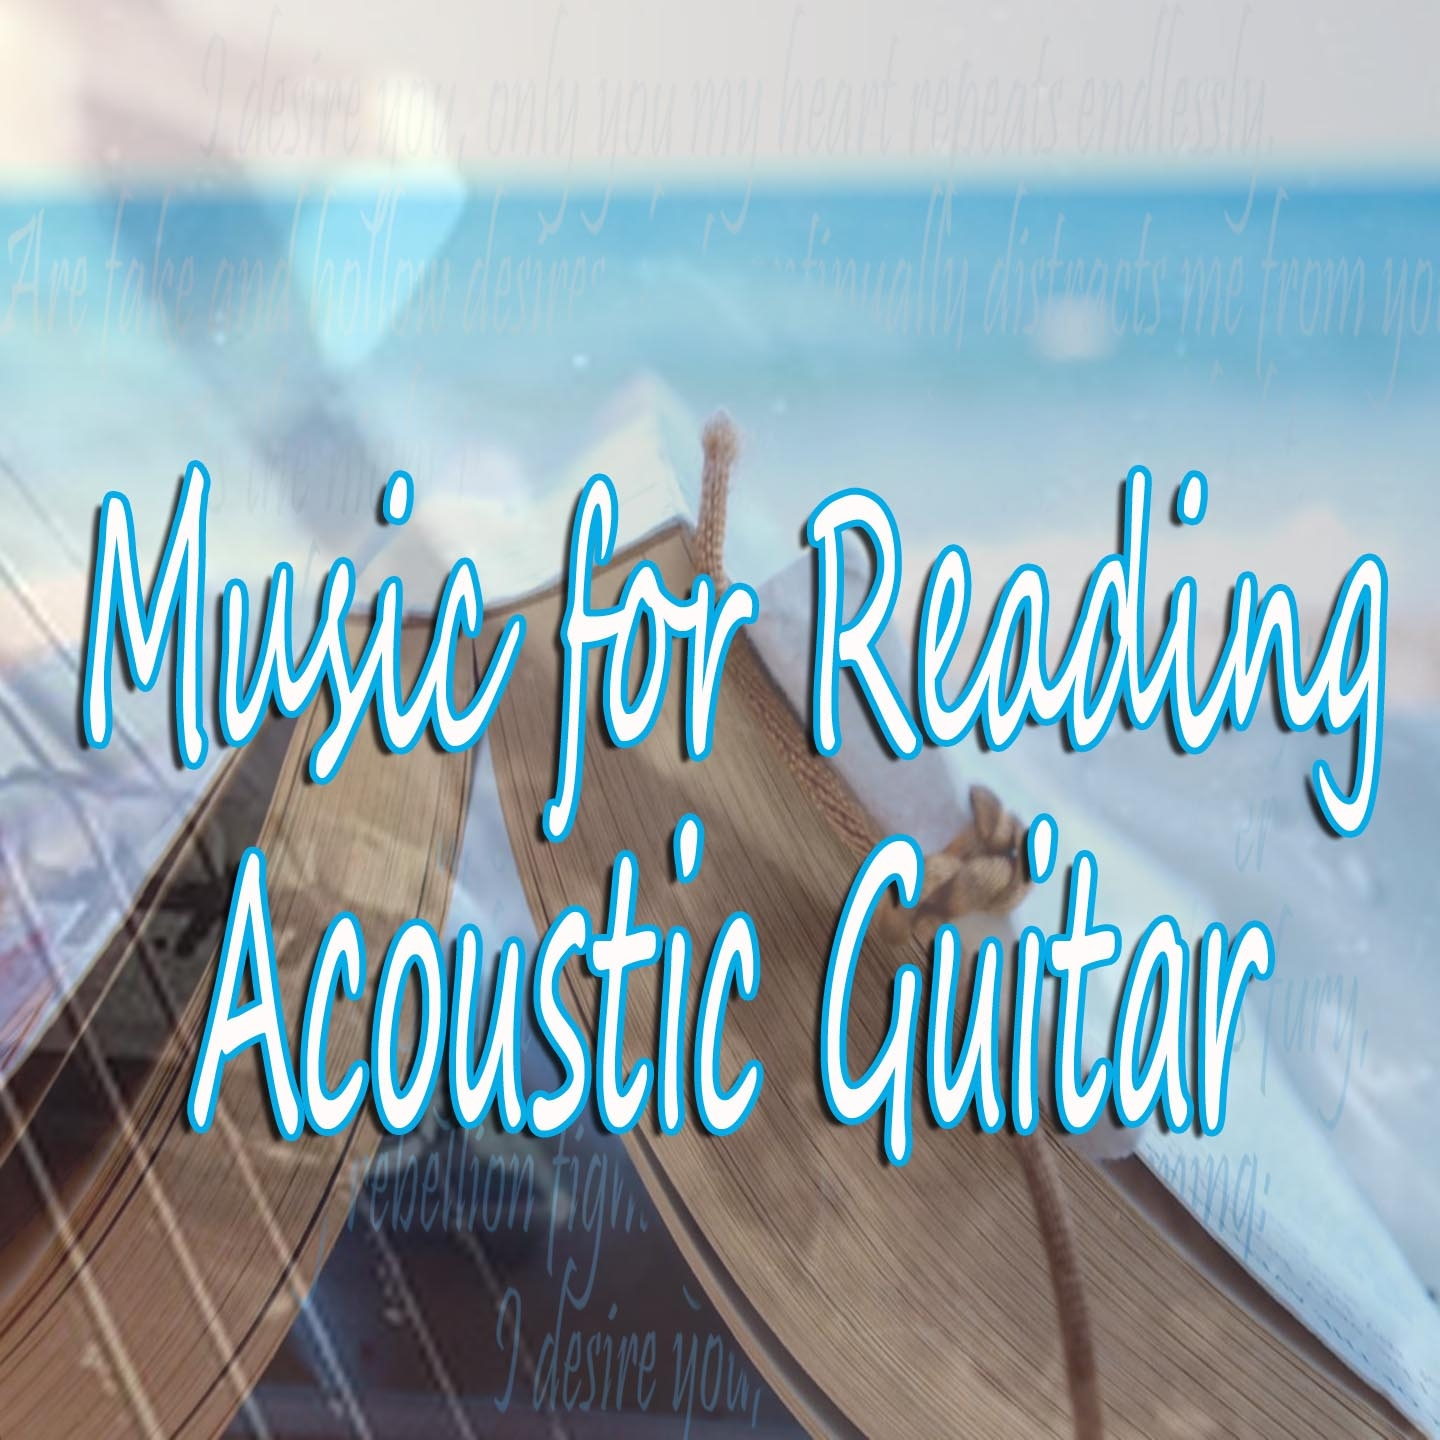 Music for Reading Acoustic Guitar